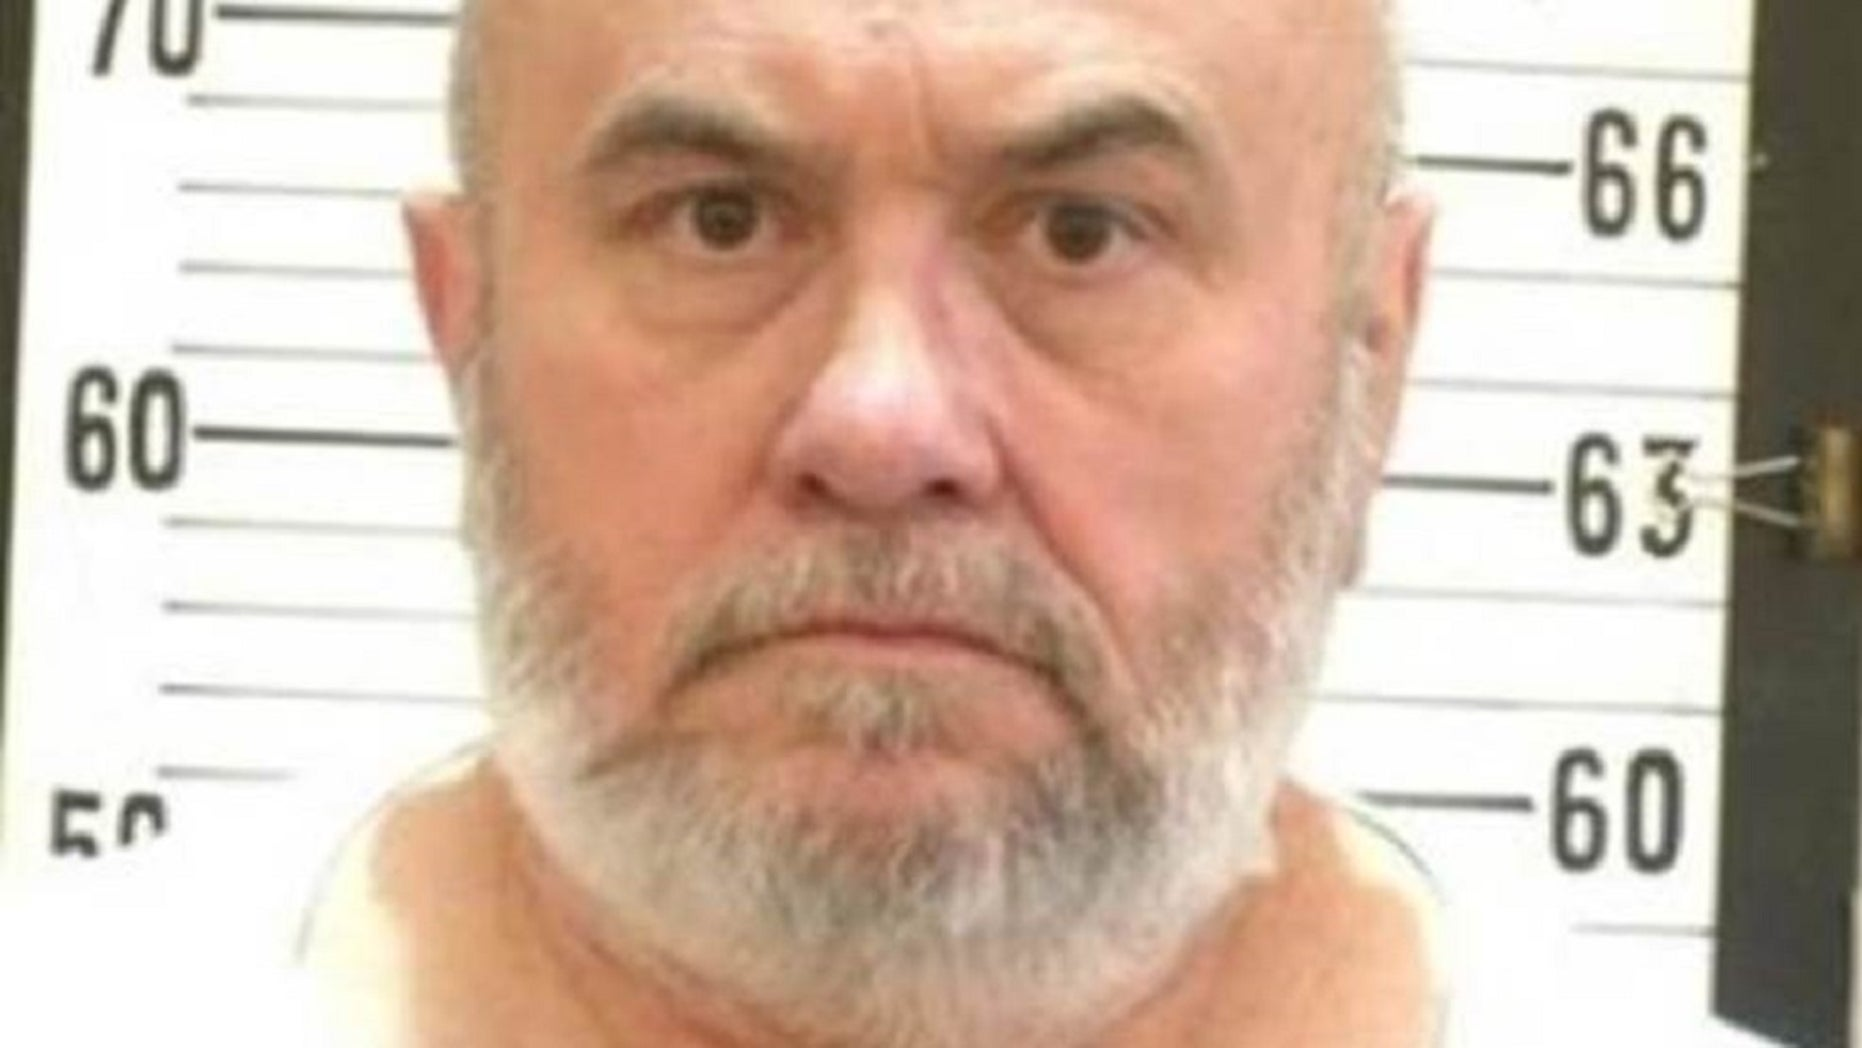 This undated photo shows death row inmate Edmund Zagorski in Tennessee.